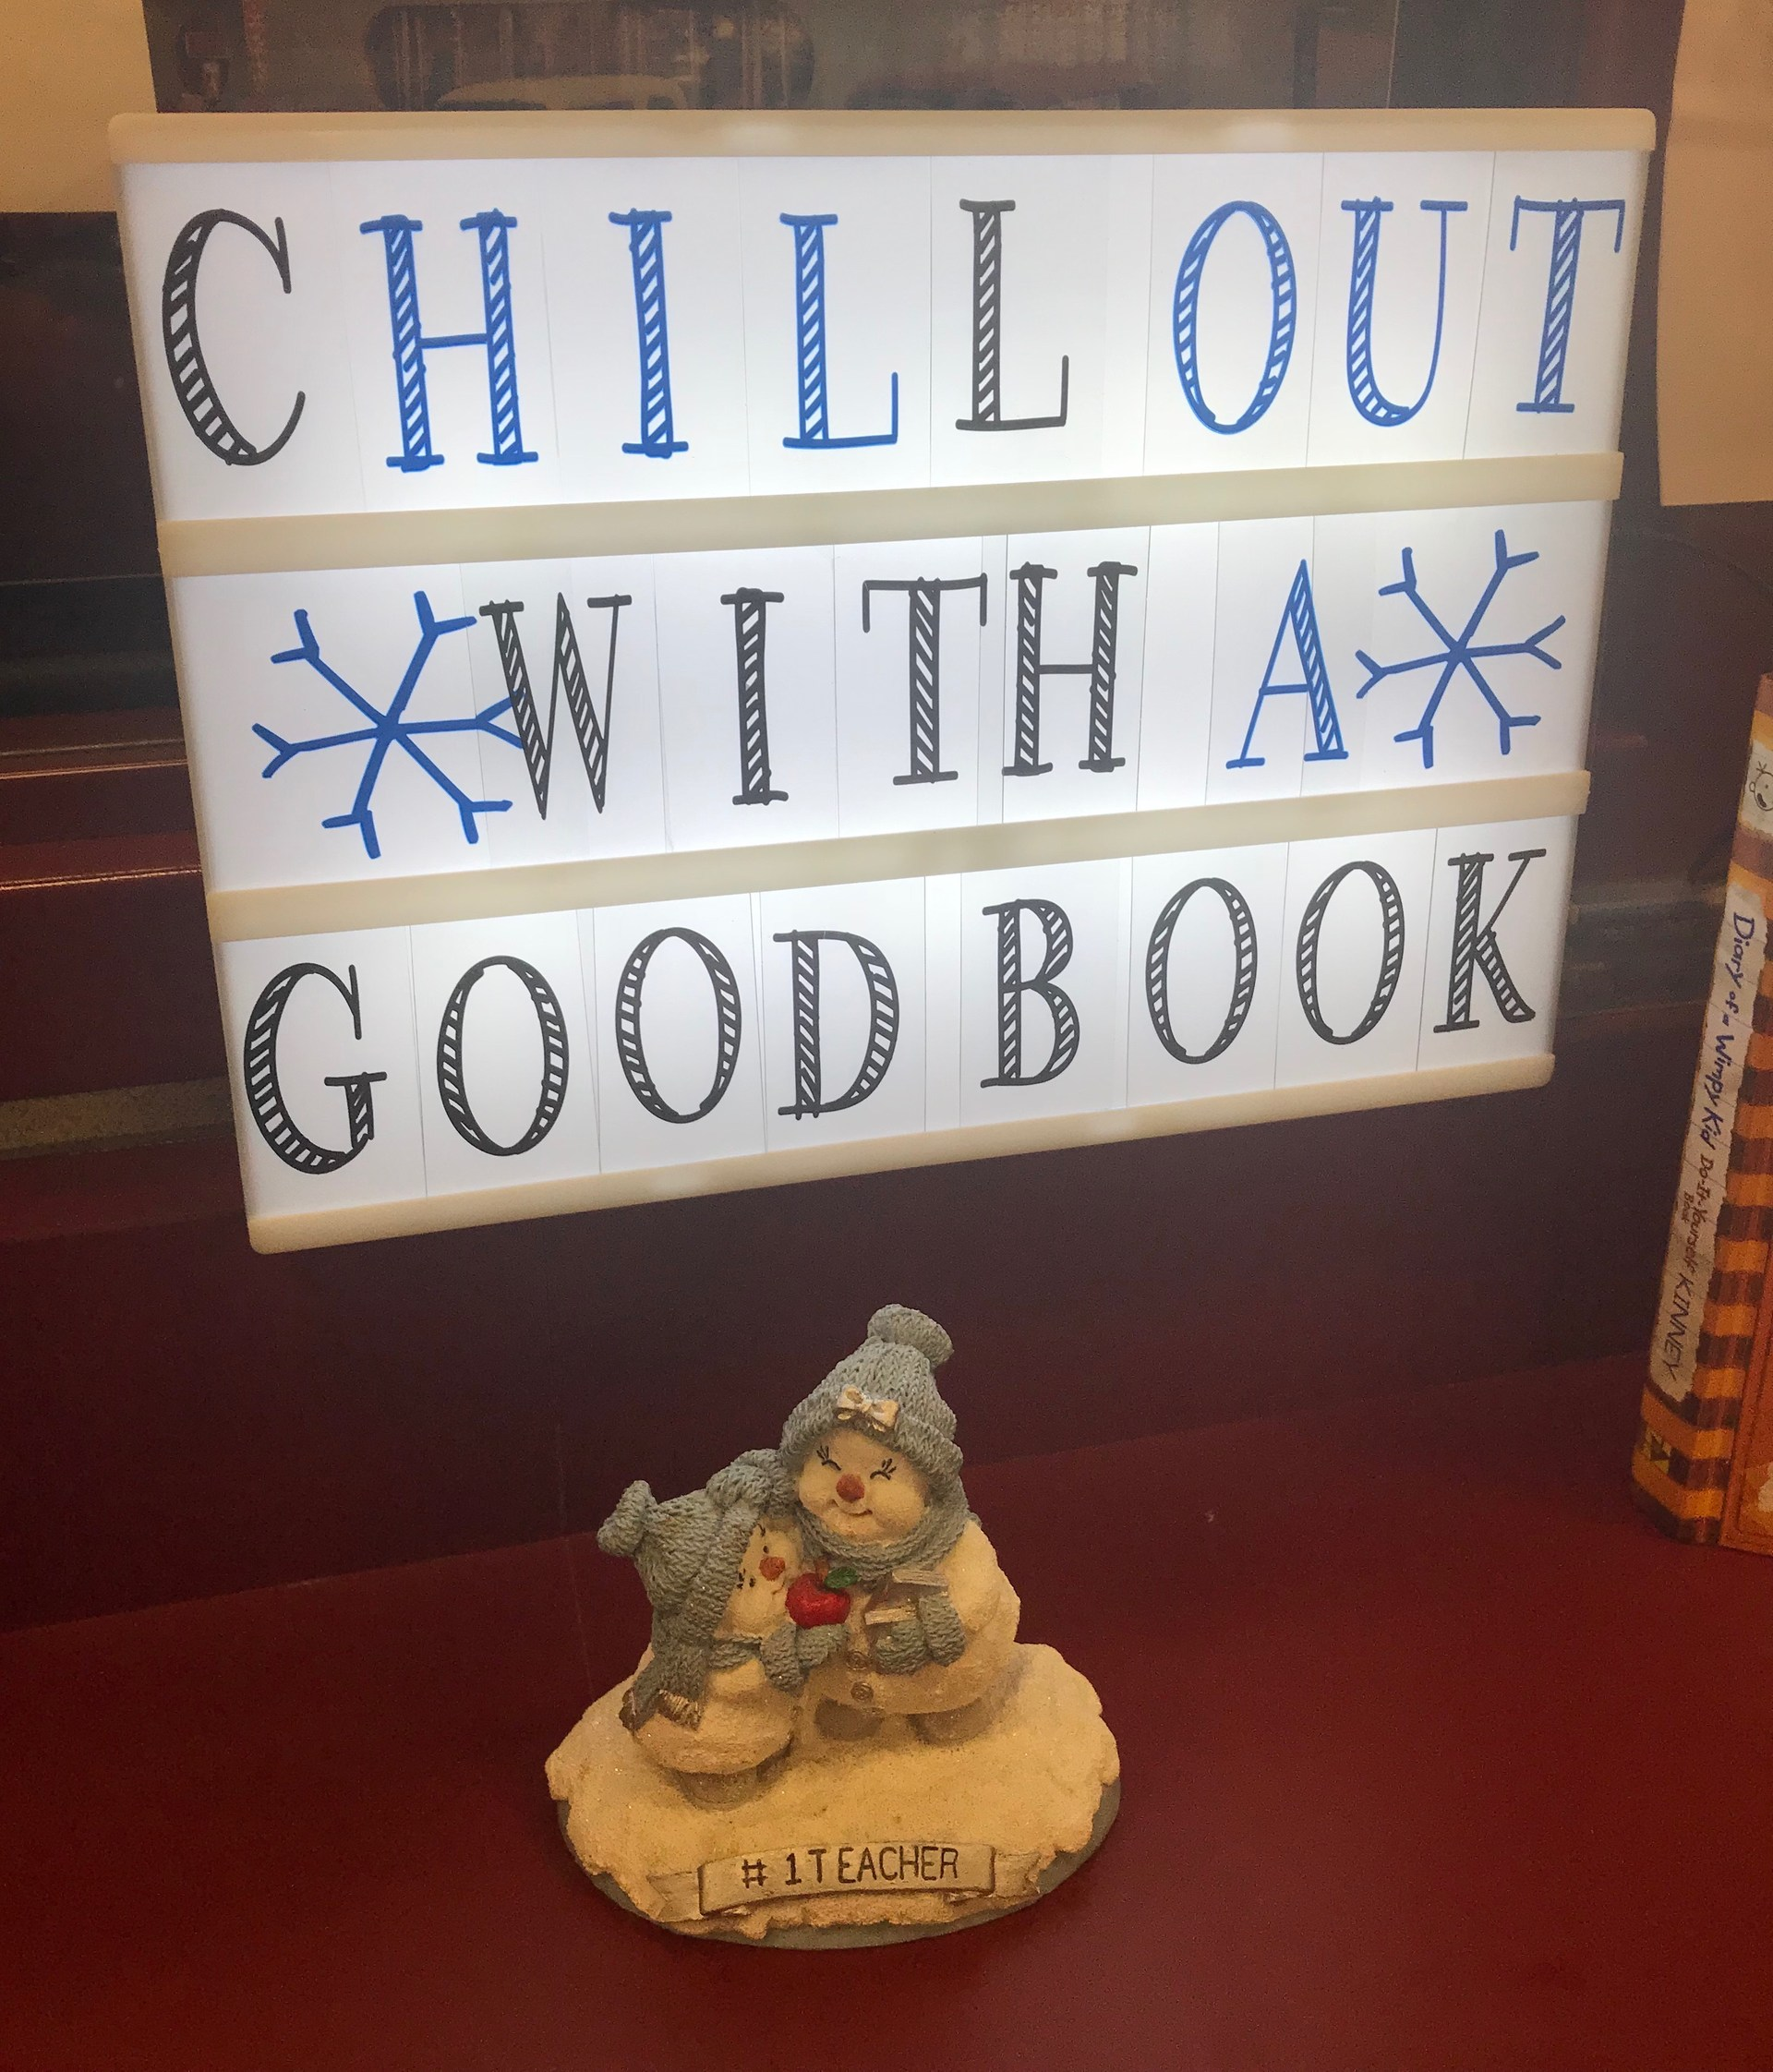 Chill out with a good book sign